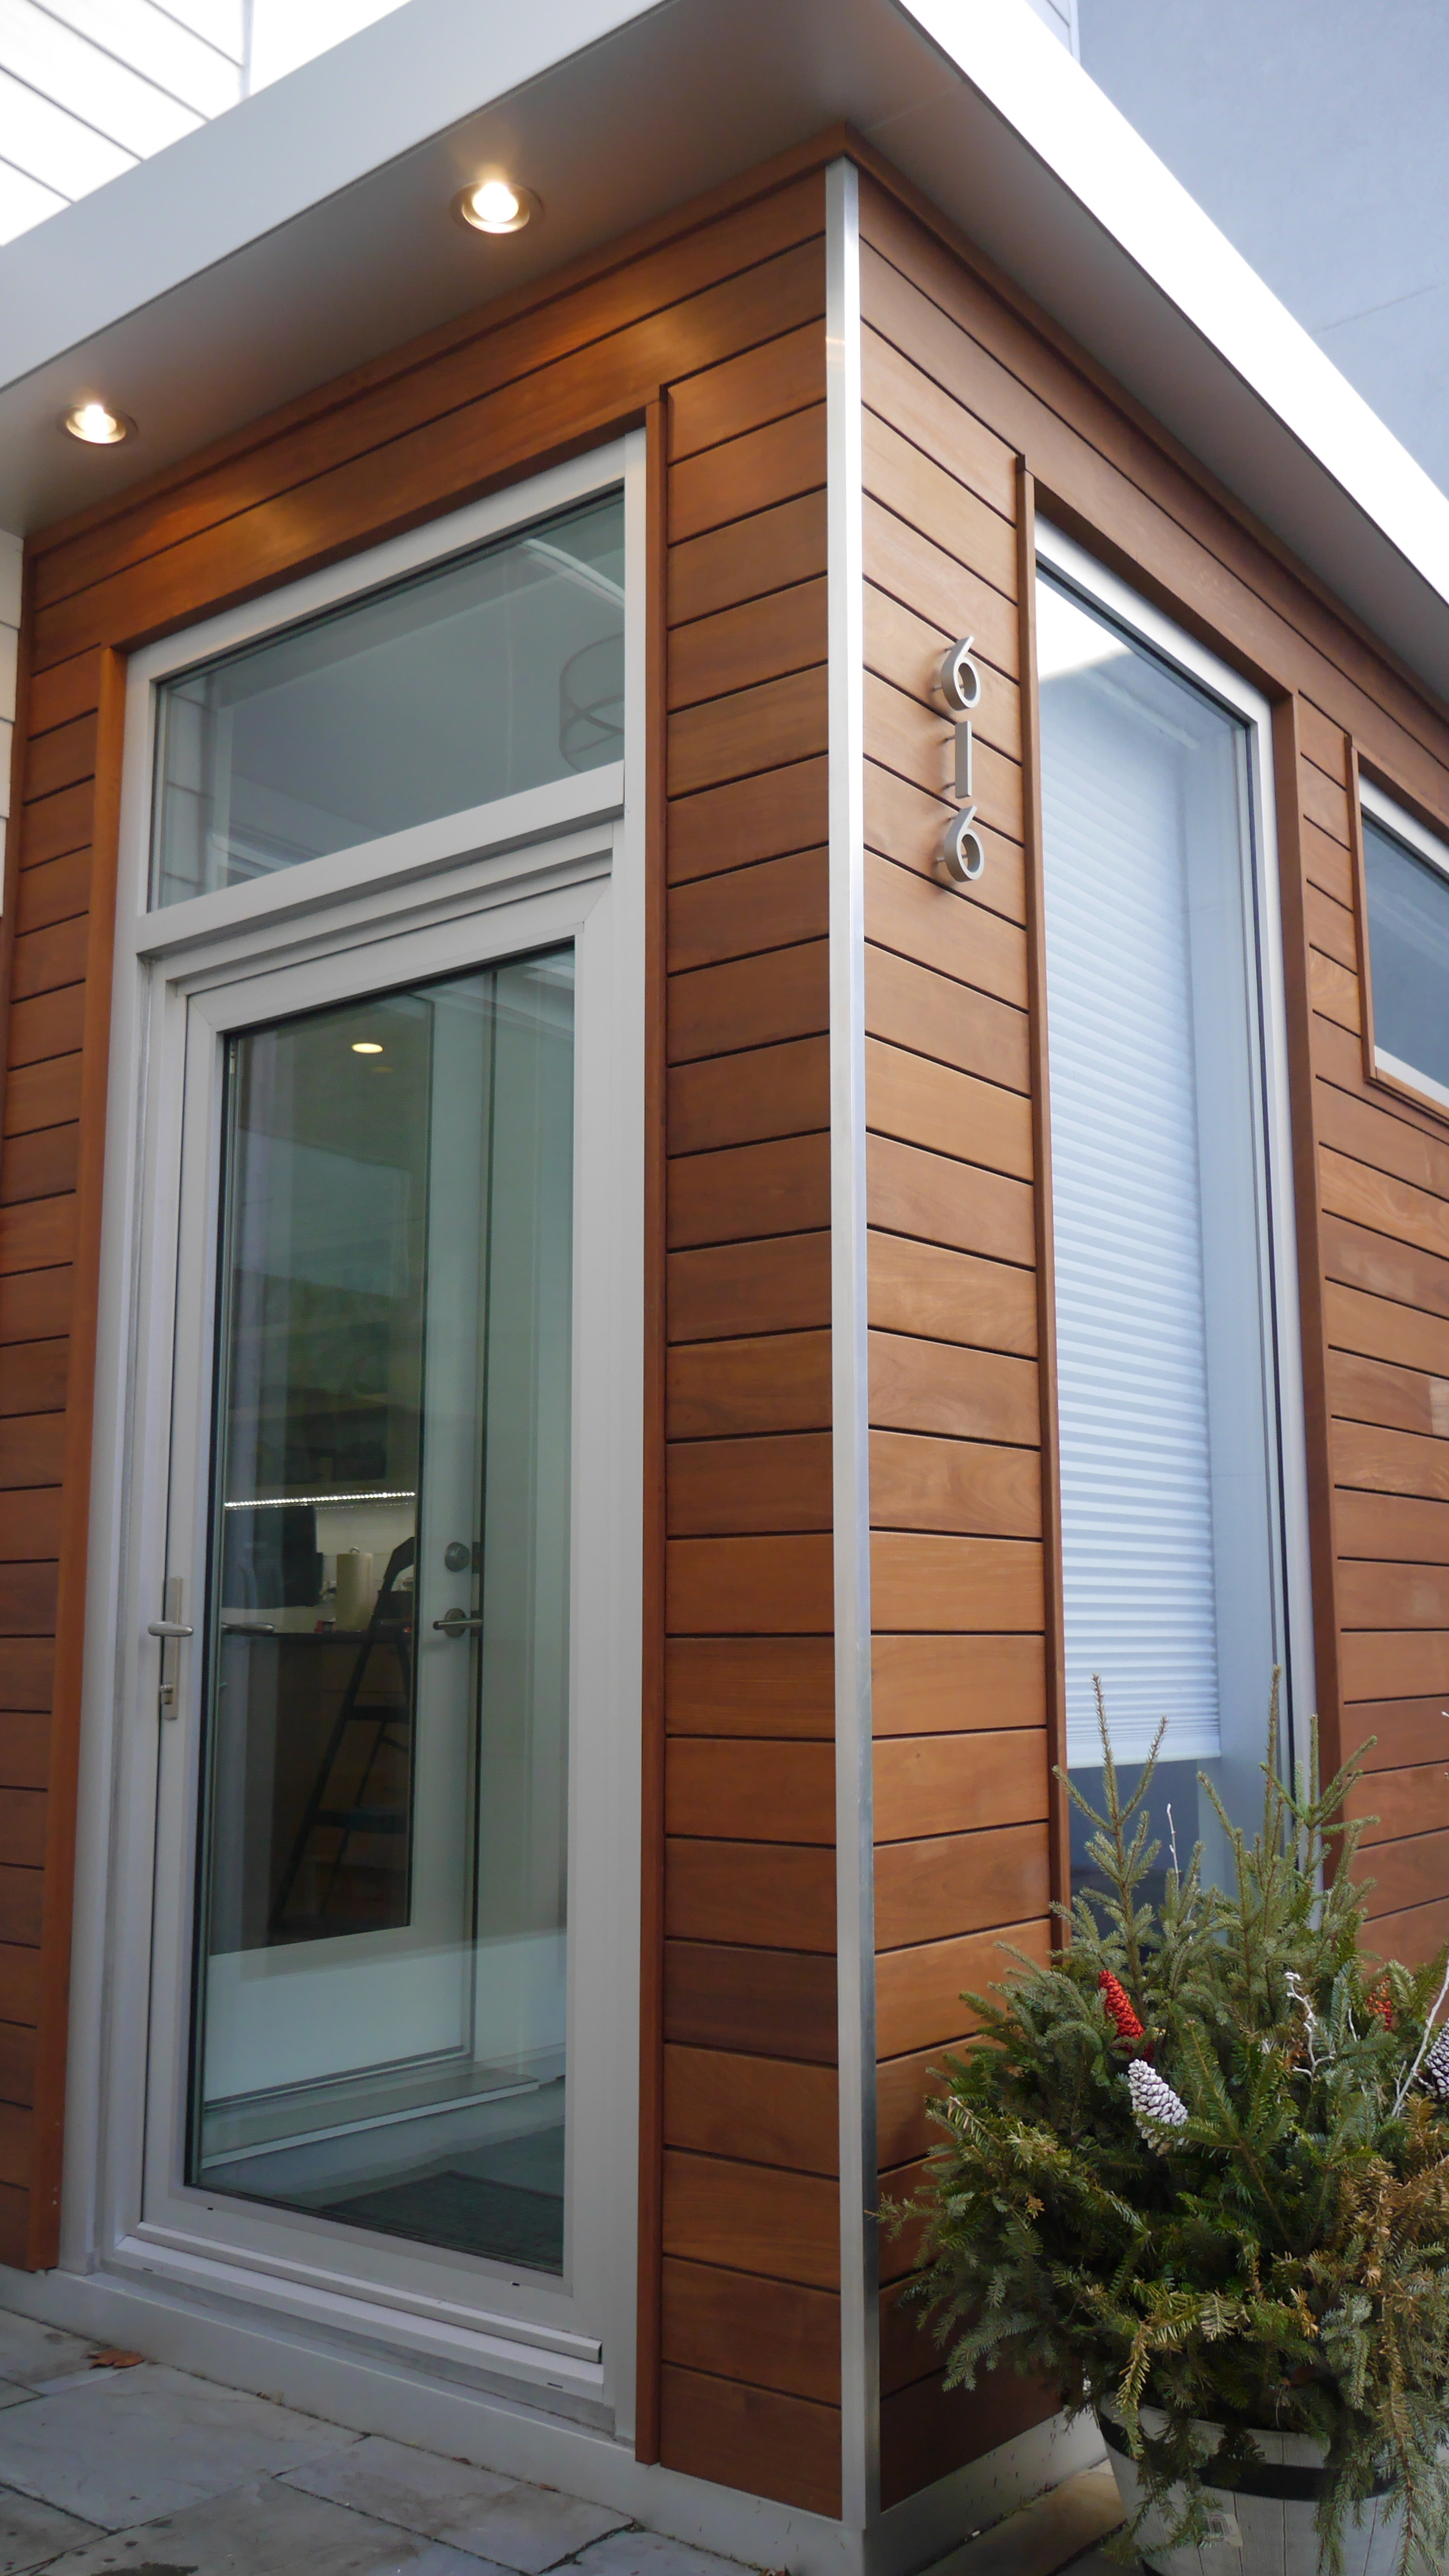 Mataverde Ipe Siding installation by Groundswell Contracting with anodized aluminum finishes